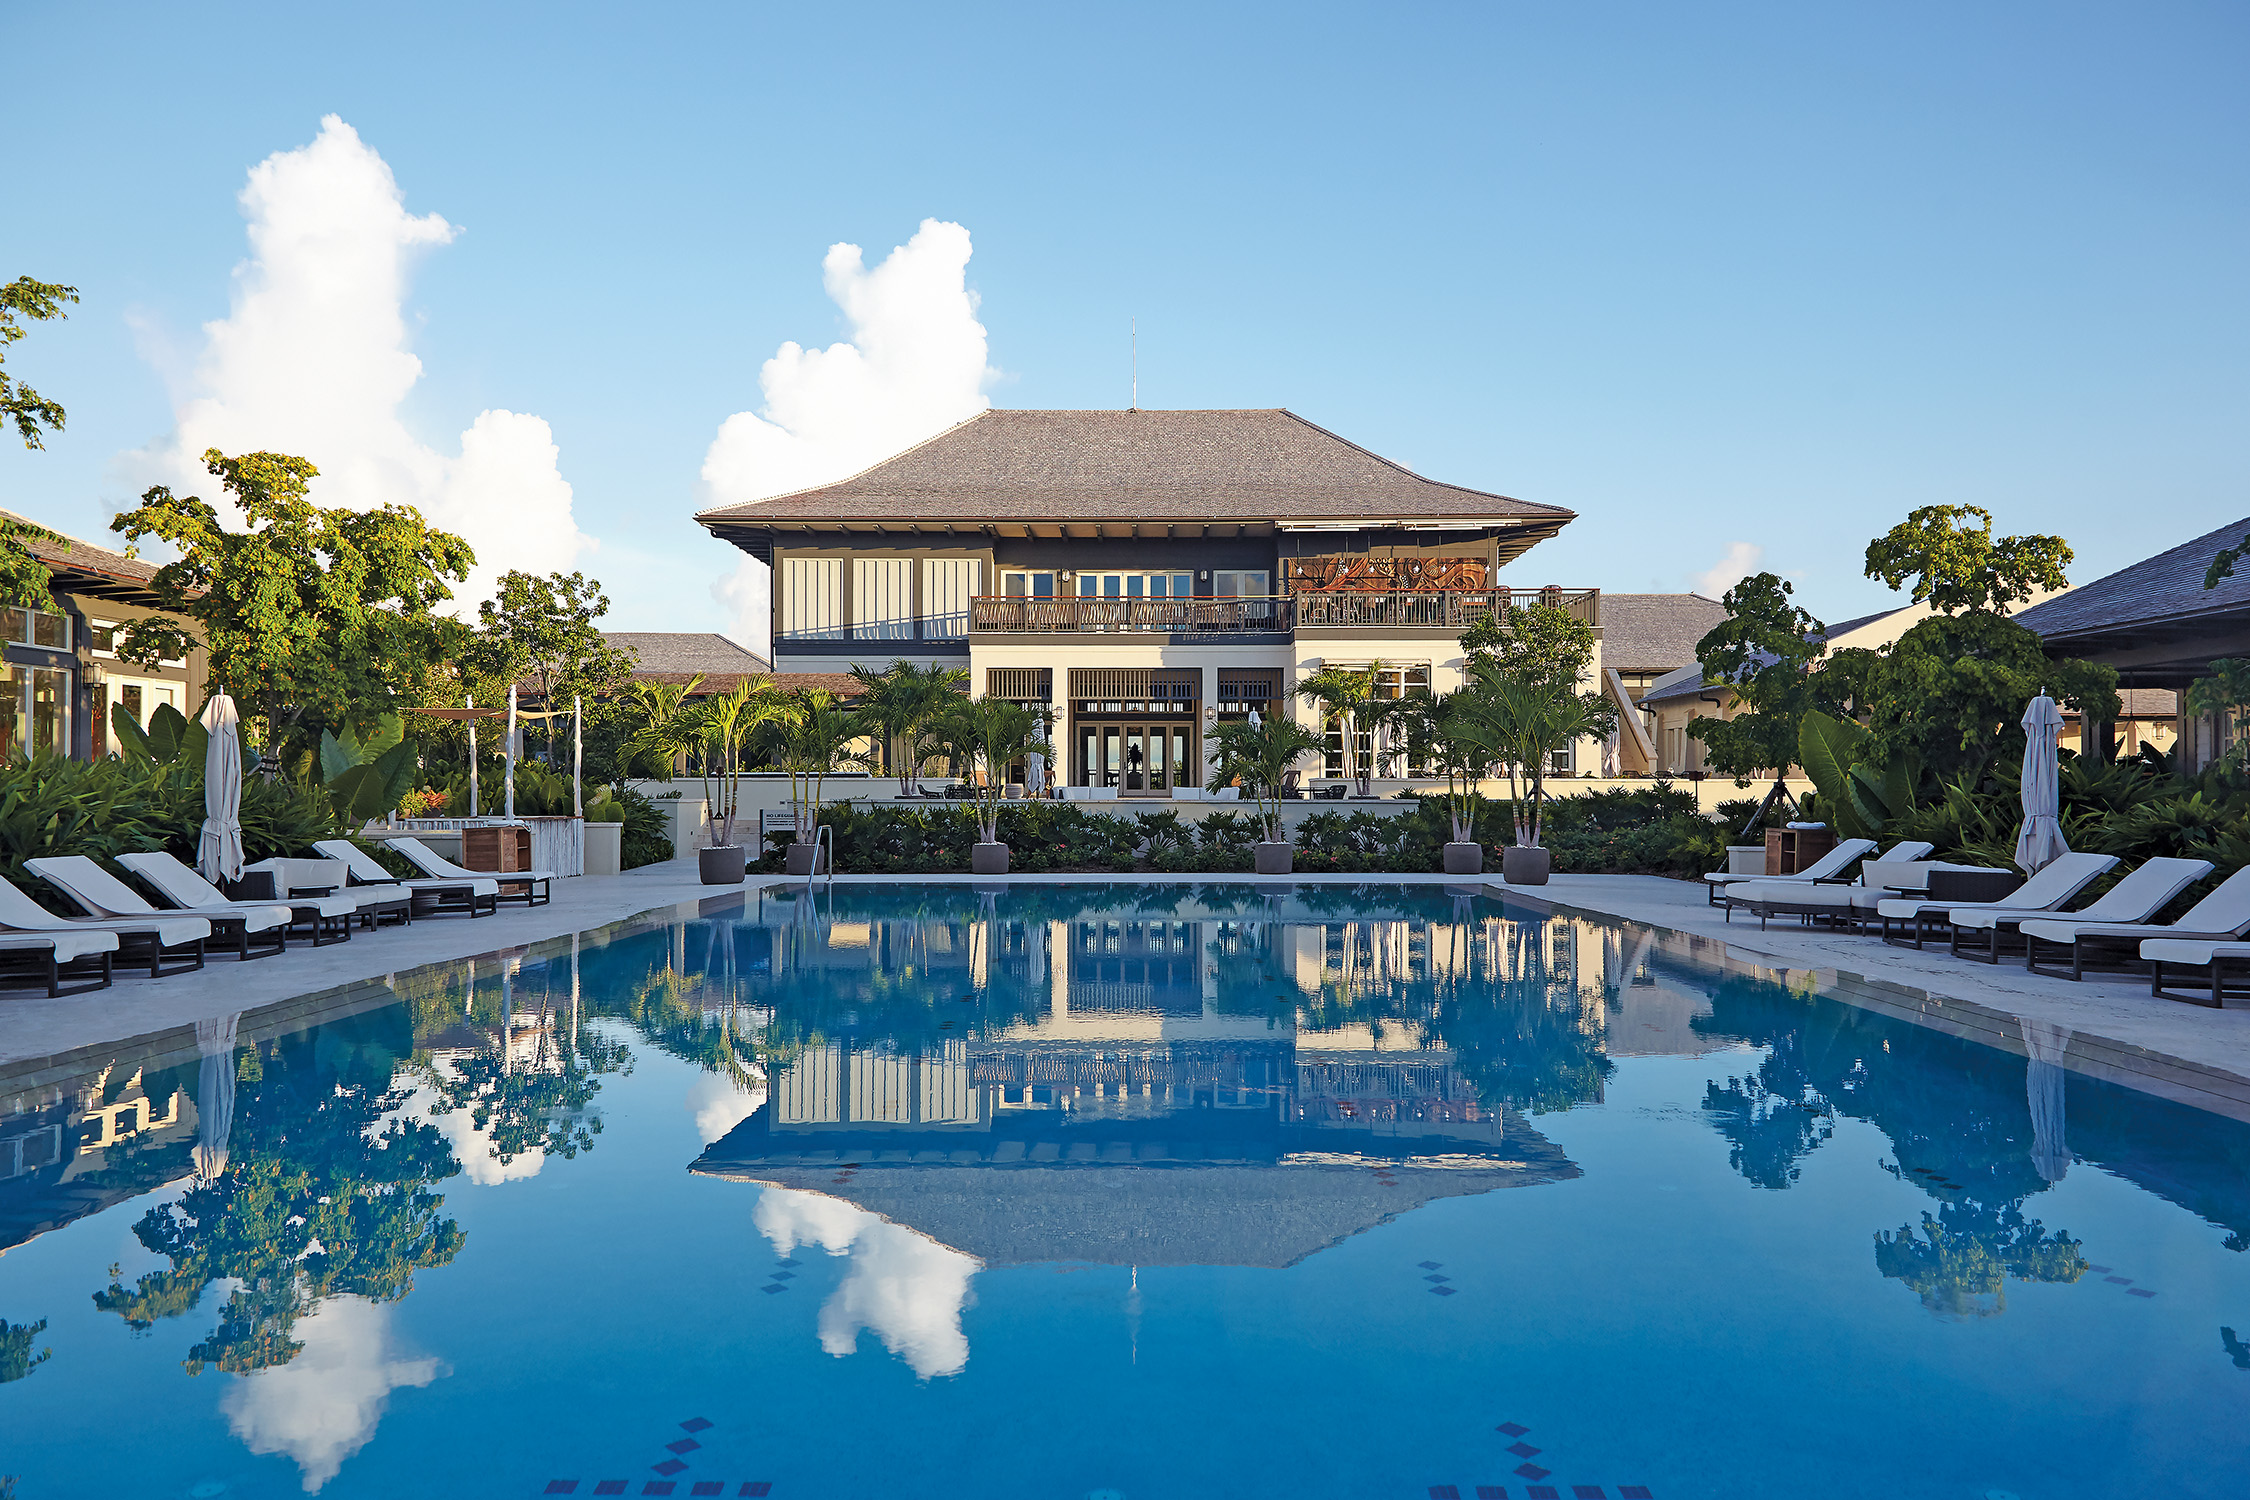 Island-House-Bahamas-Nassau-Island-Tropical-Resort-Hotel-Caroline-Portillo-Mark-Holowesko-Pool-Fort-Lauderdale-Venice-Magazine